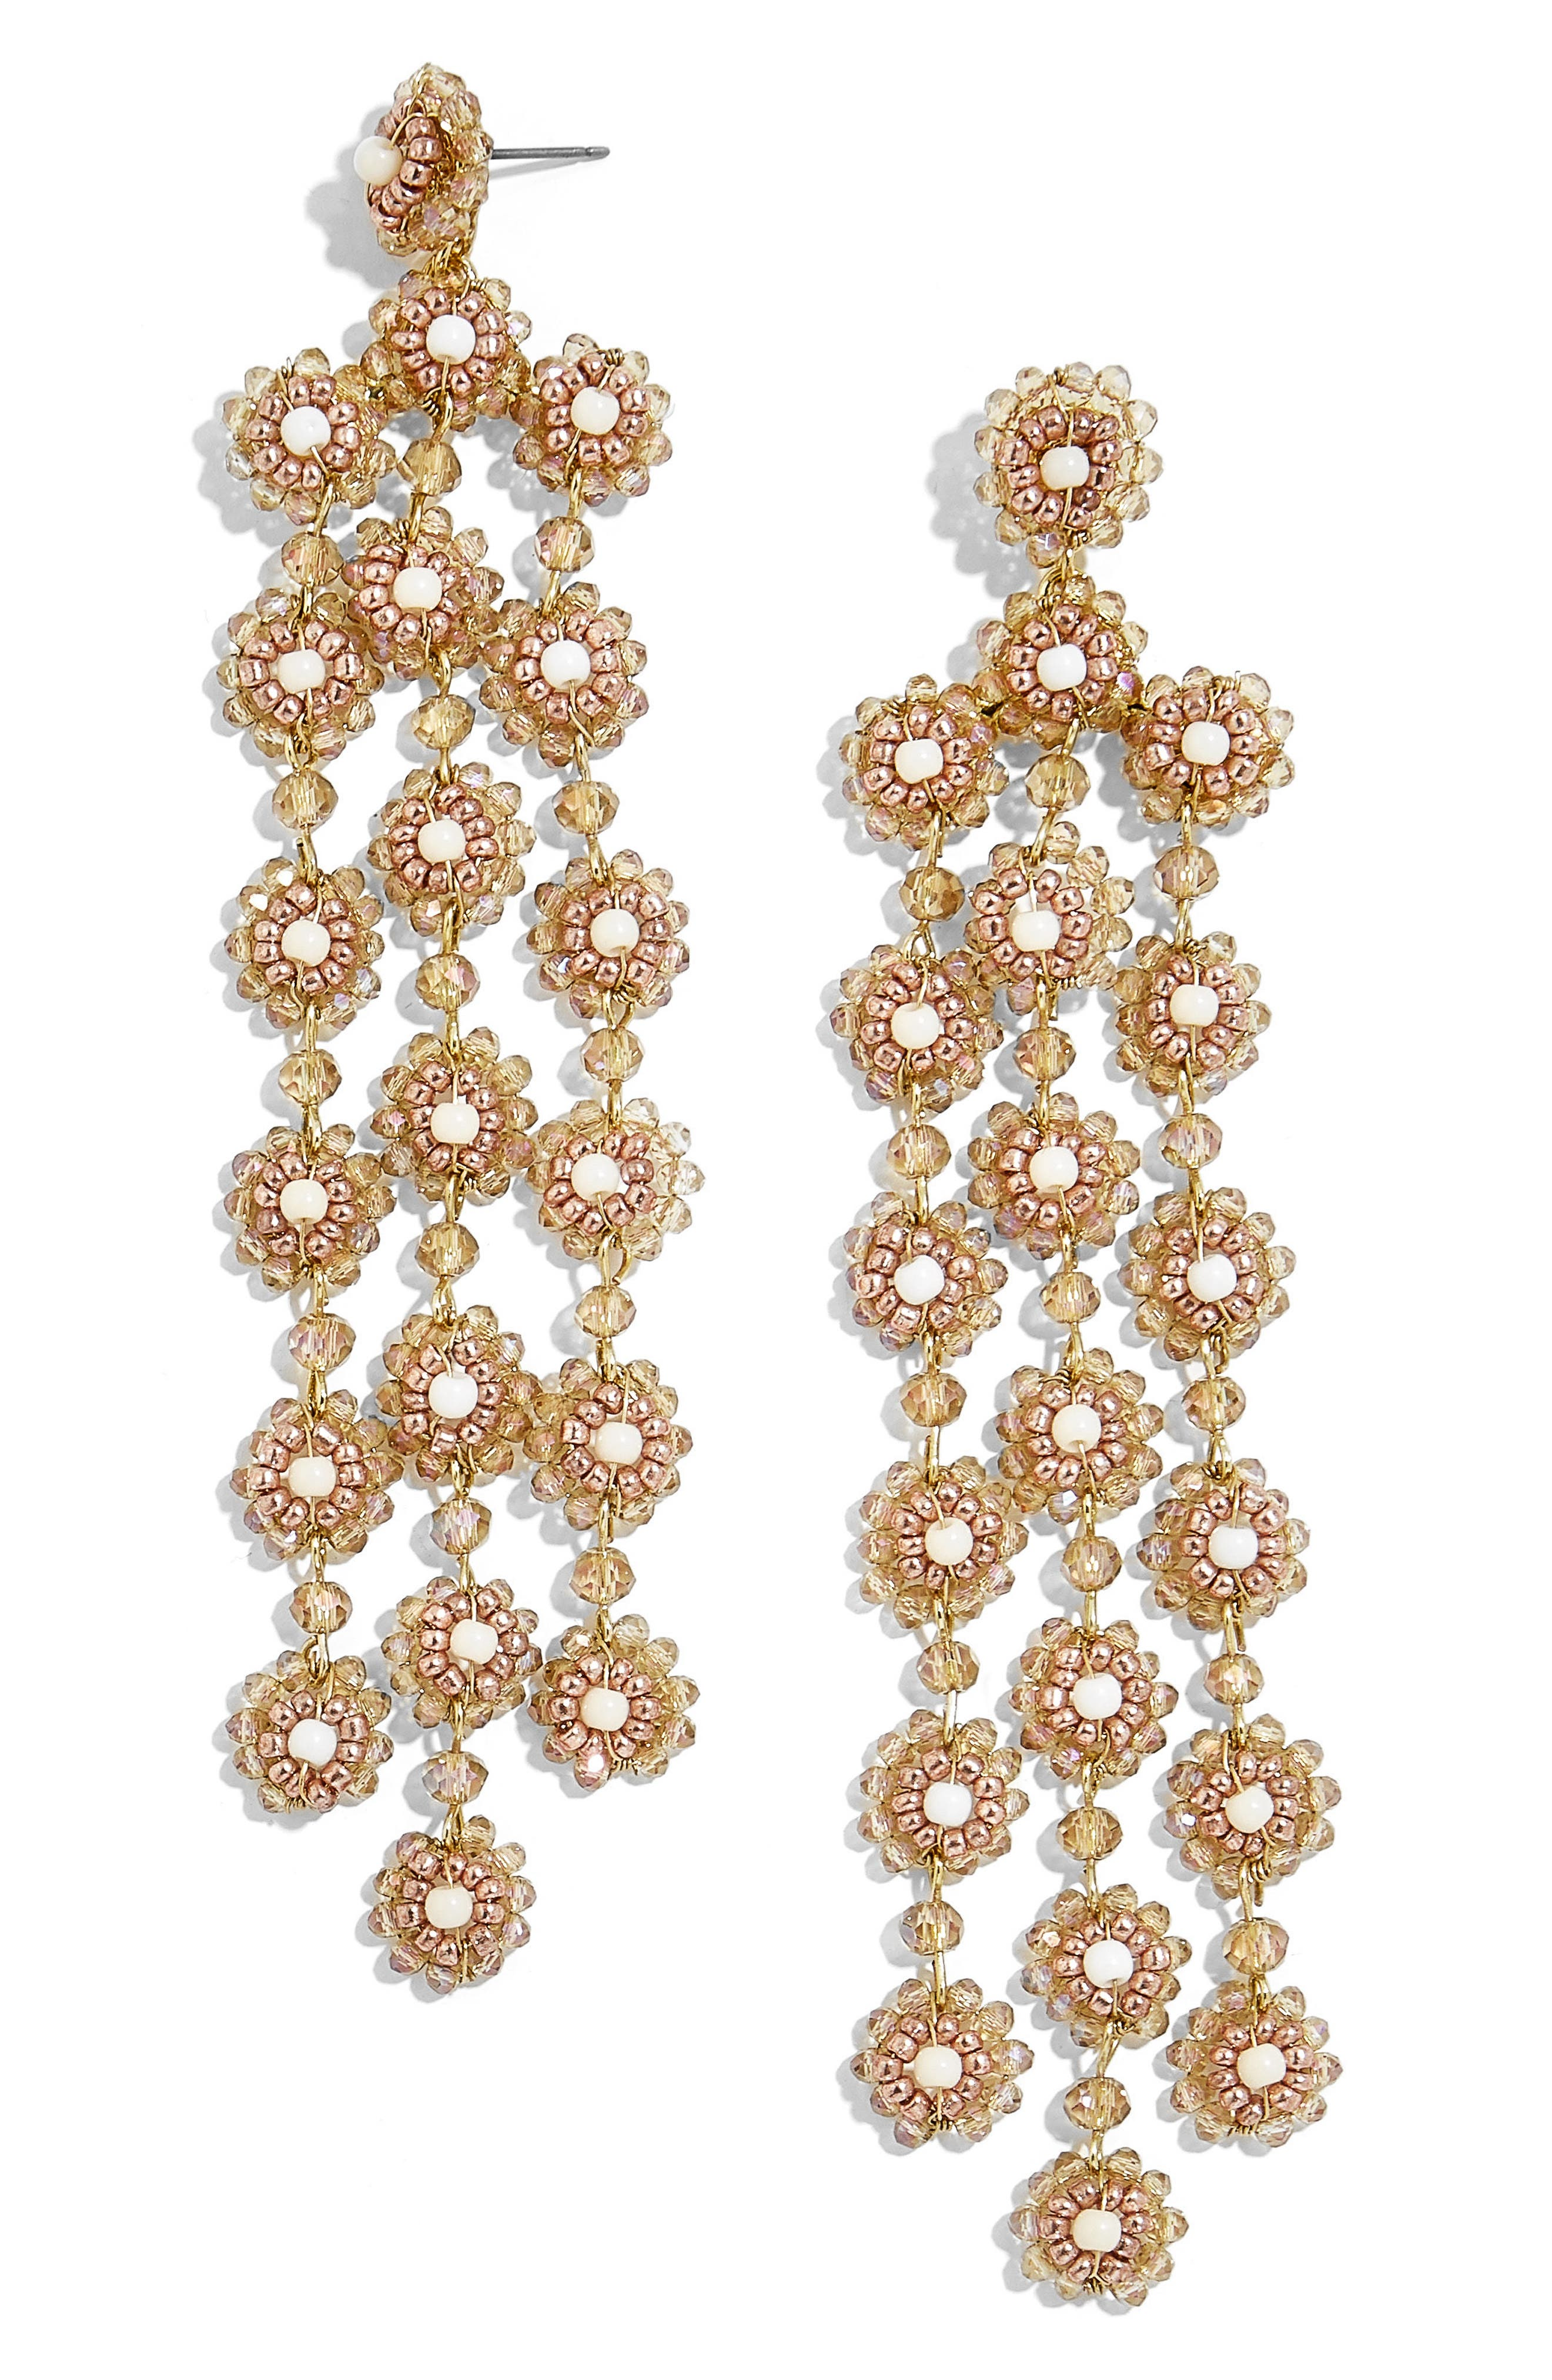 BaubleBar Shiori Beaded Chandelier Earrings